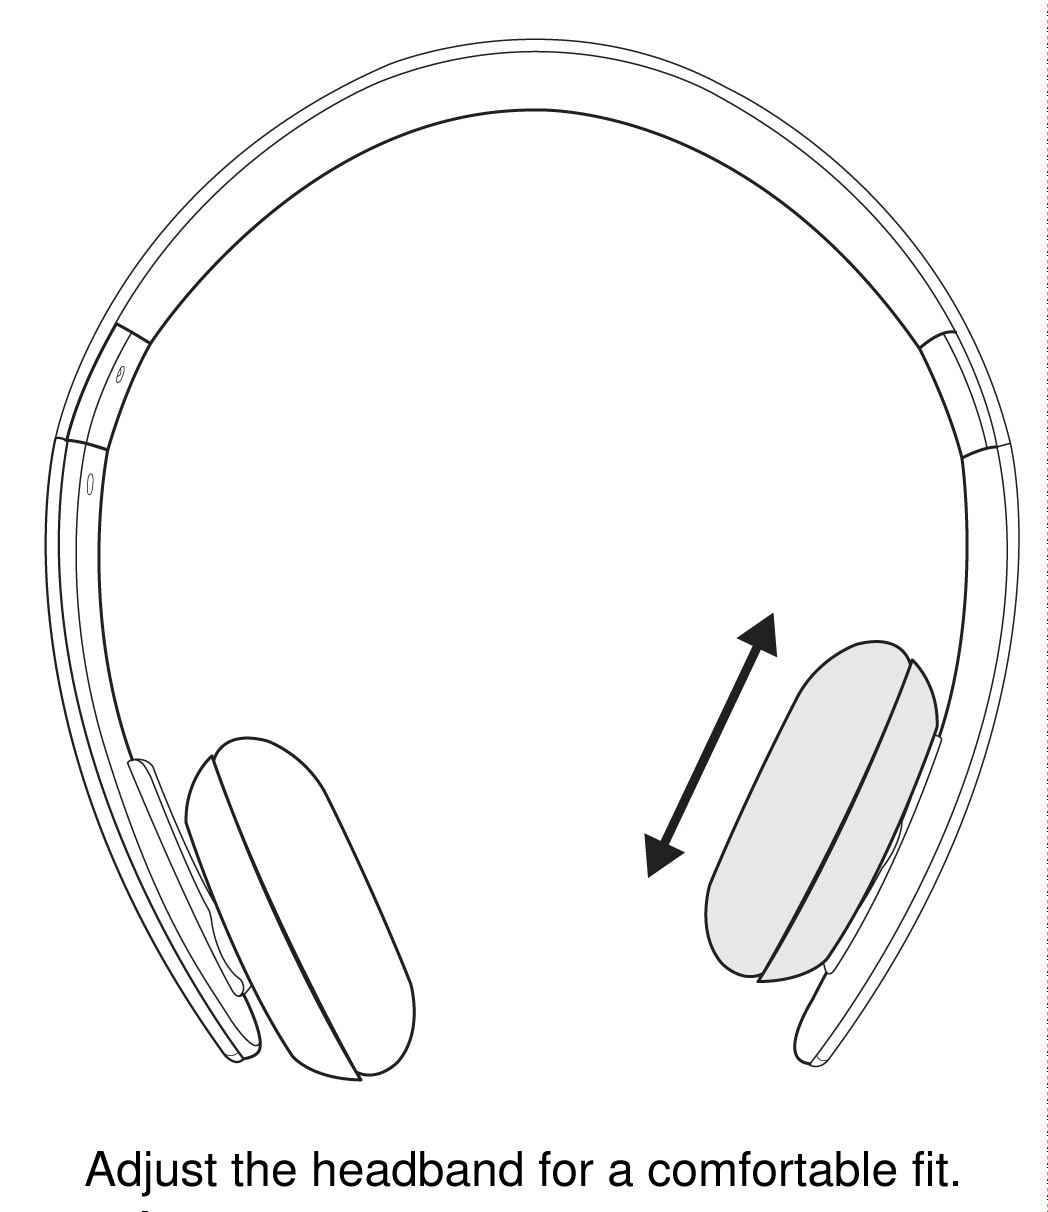 Drawing headphones fire. Shure publications user guides